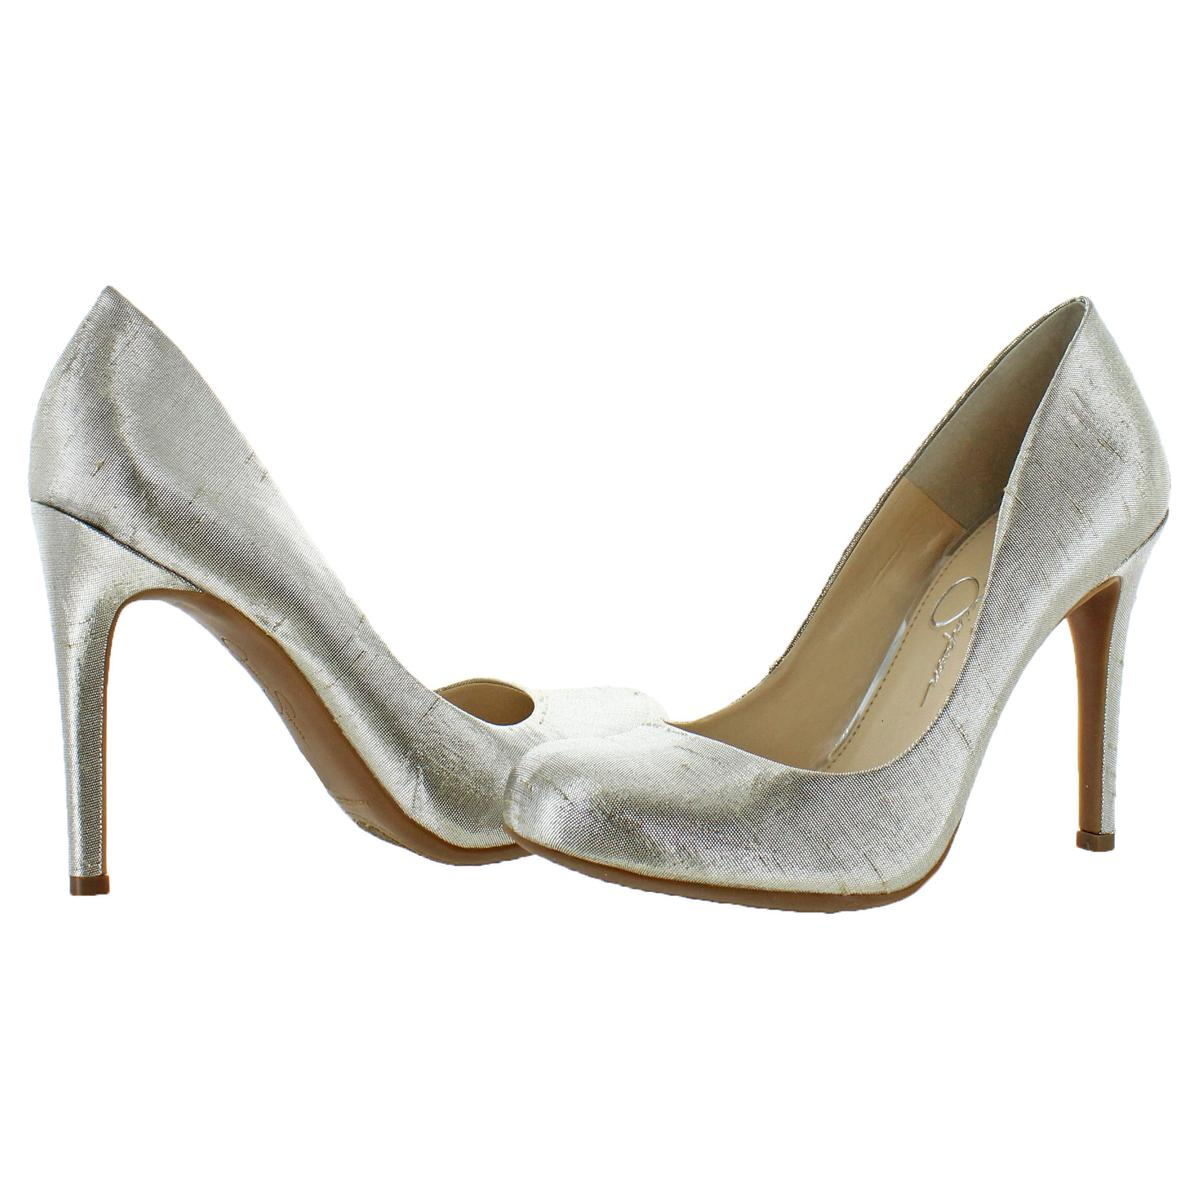 Jessica-Simpson-Women-039-s-Calie-Round-Toe-Classic-Heels-Pumps-Shoes thumbnail 16